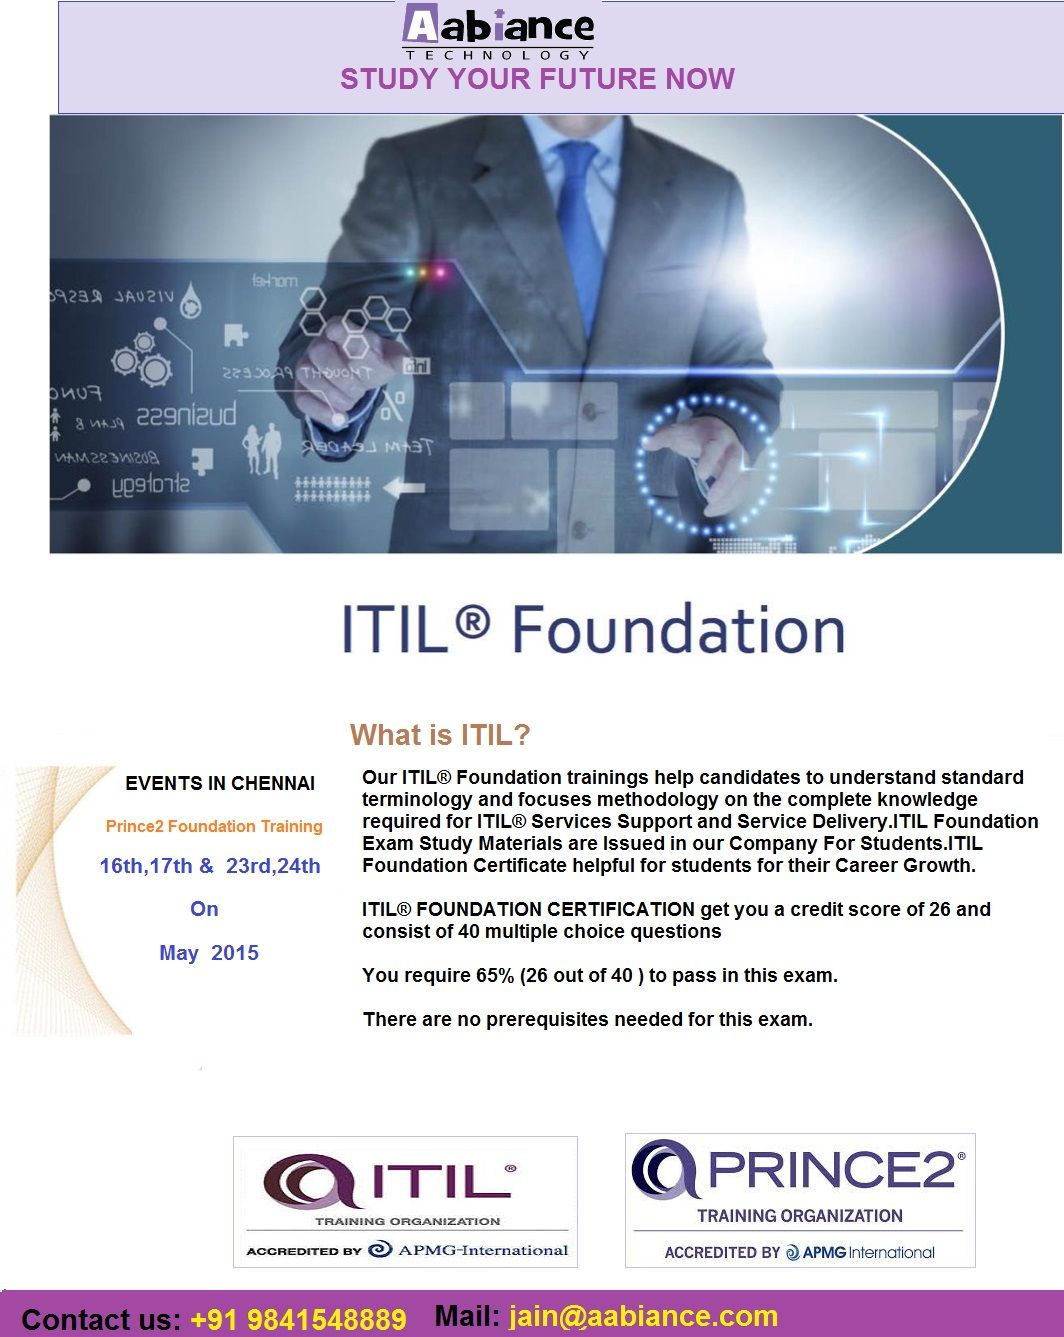 Our Company Give Coaching For Prince2 Foundation In Chennai Itil